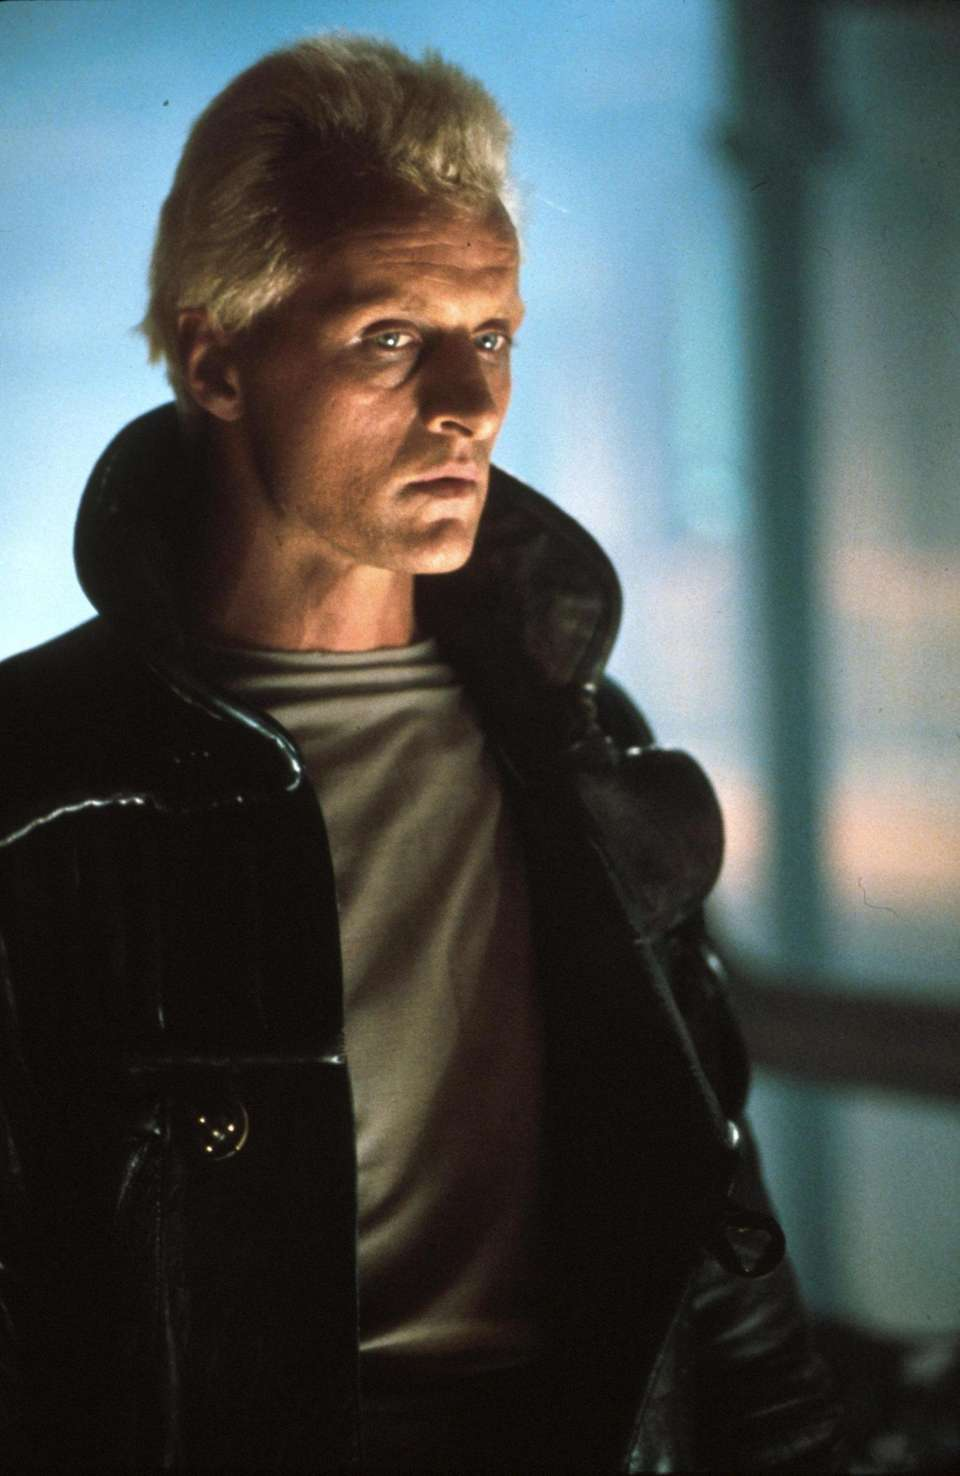 Dutch film actor Rutger Hauer, who specialized in